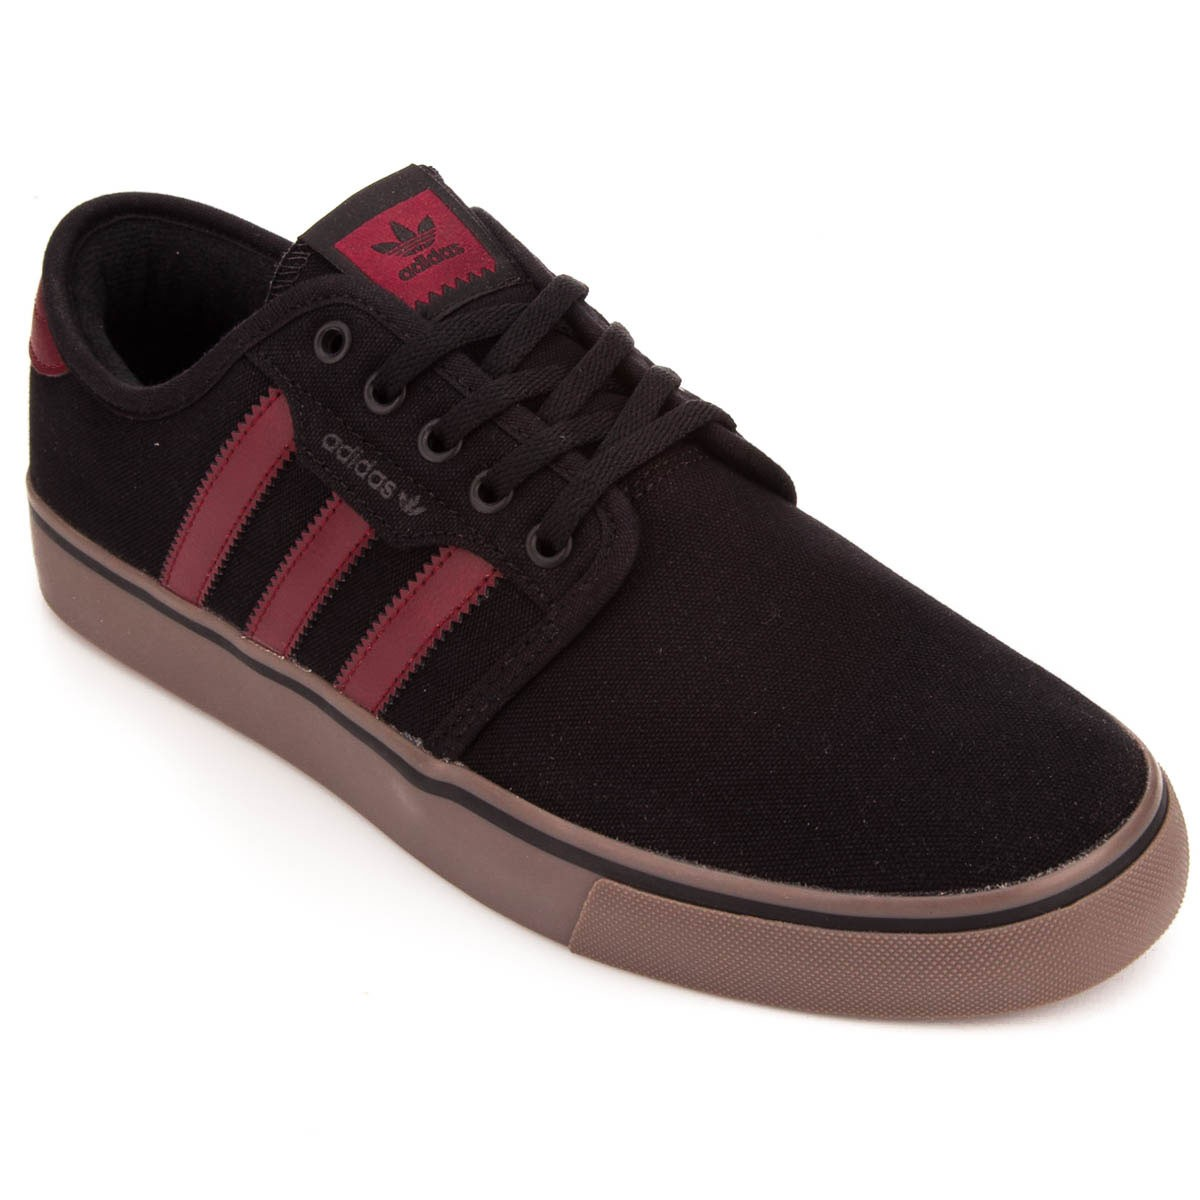 Adidas Seeley Shoes - Black/Burgundy/Gum - 6.0